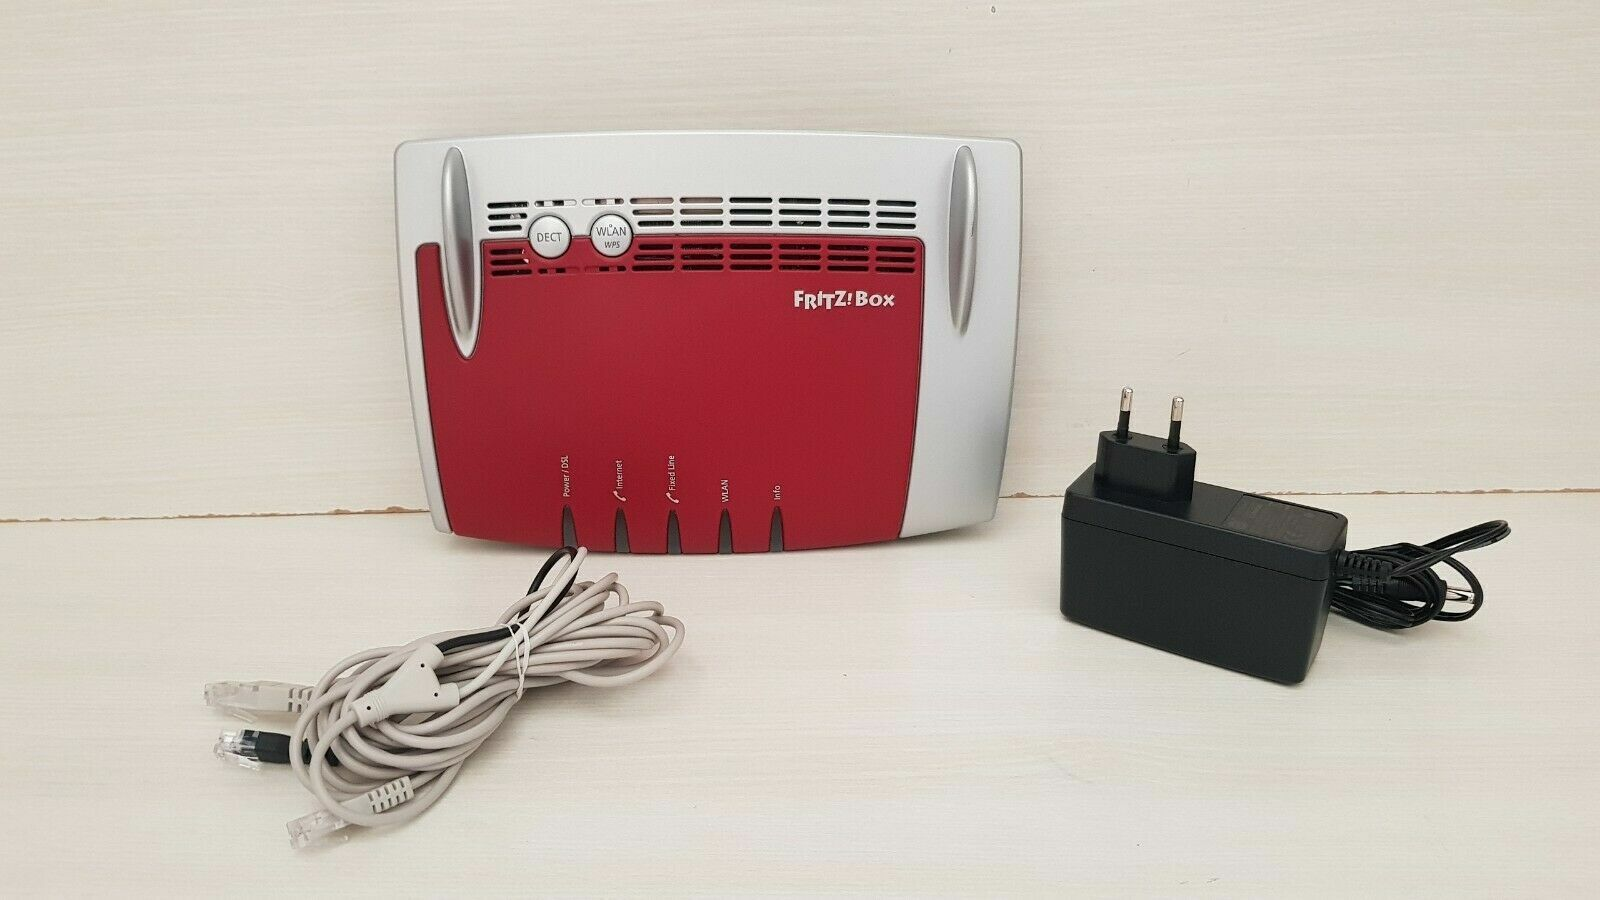 Fritzbox 7490 AVM FRITZ!BOX modem router  EDITION WIND con cavo Y